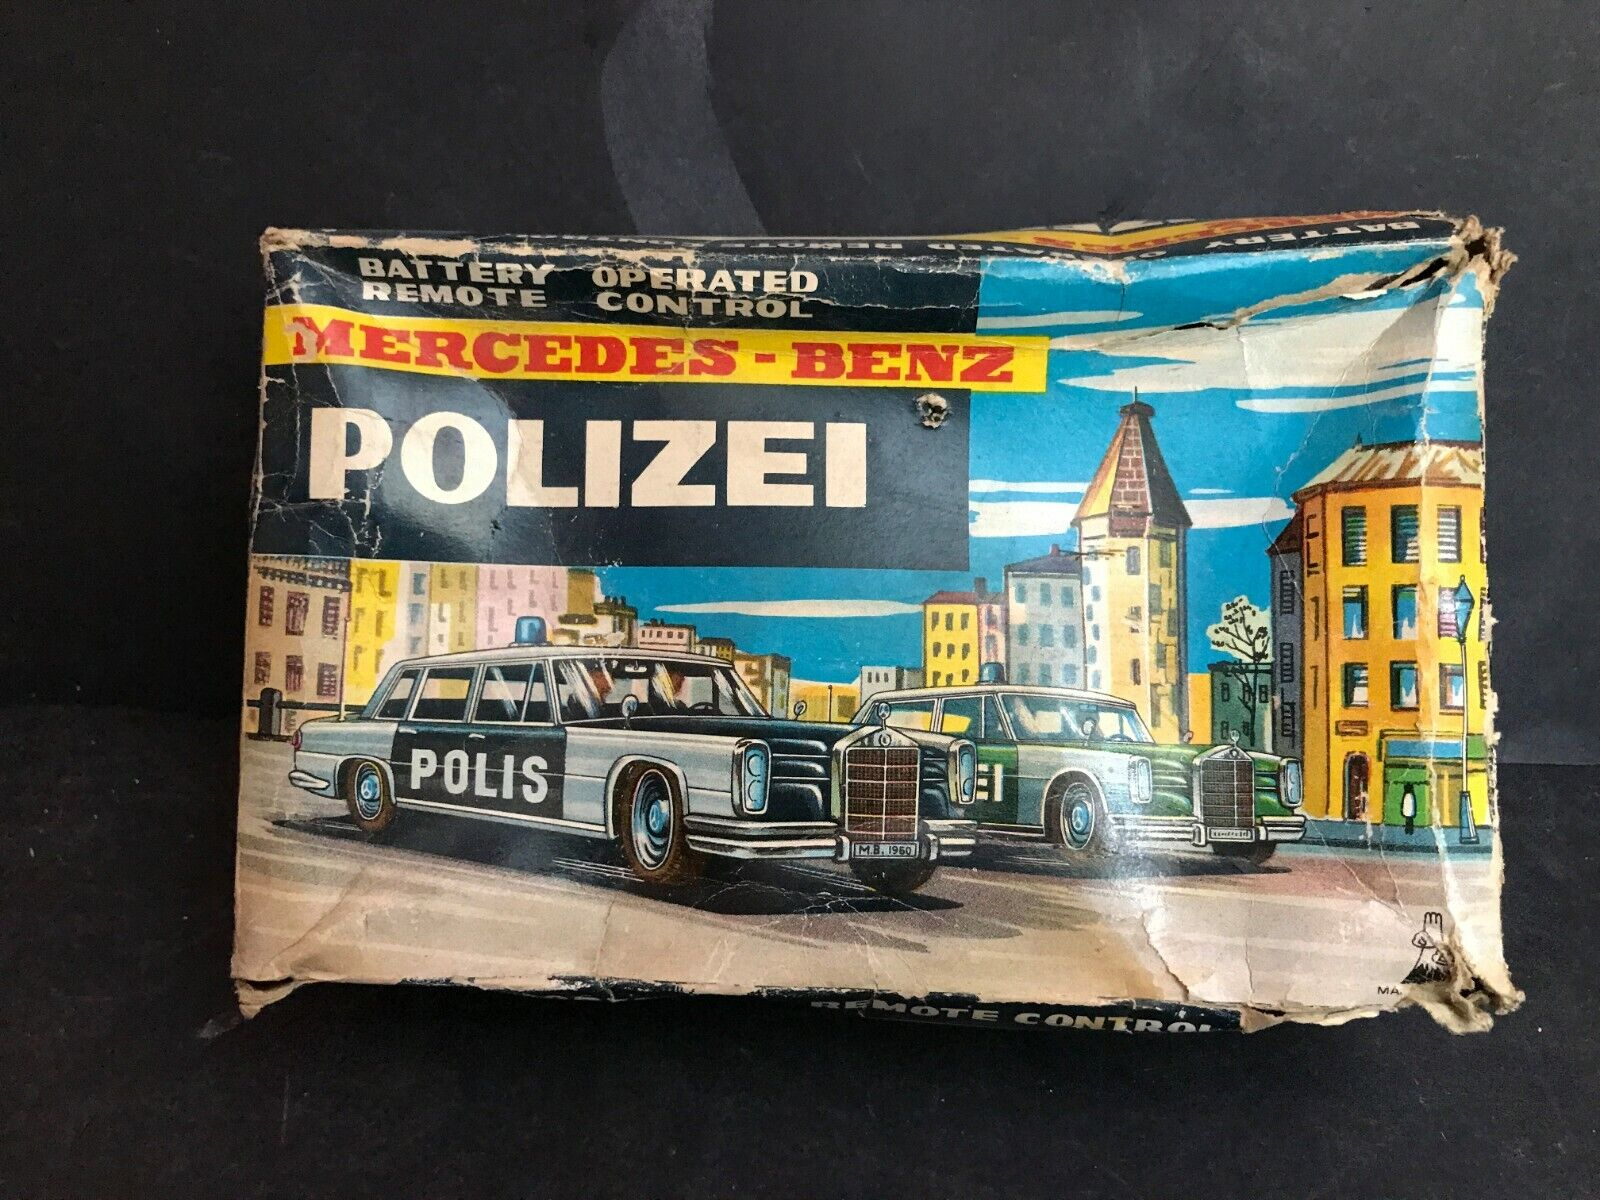 MERCEDES BENZ POLIZEI auto giocattolo di latta battery operated Japan